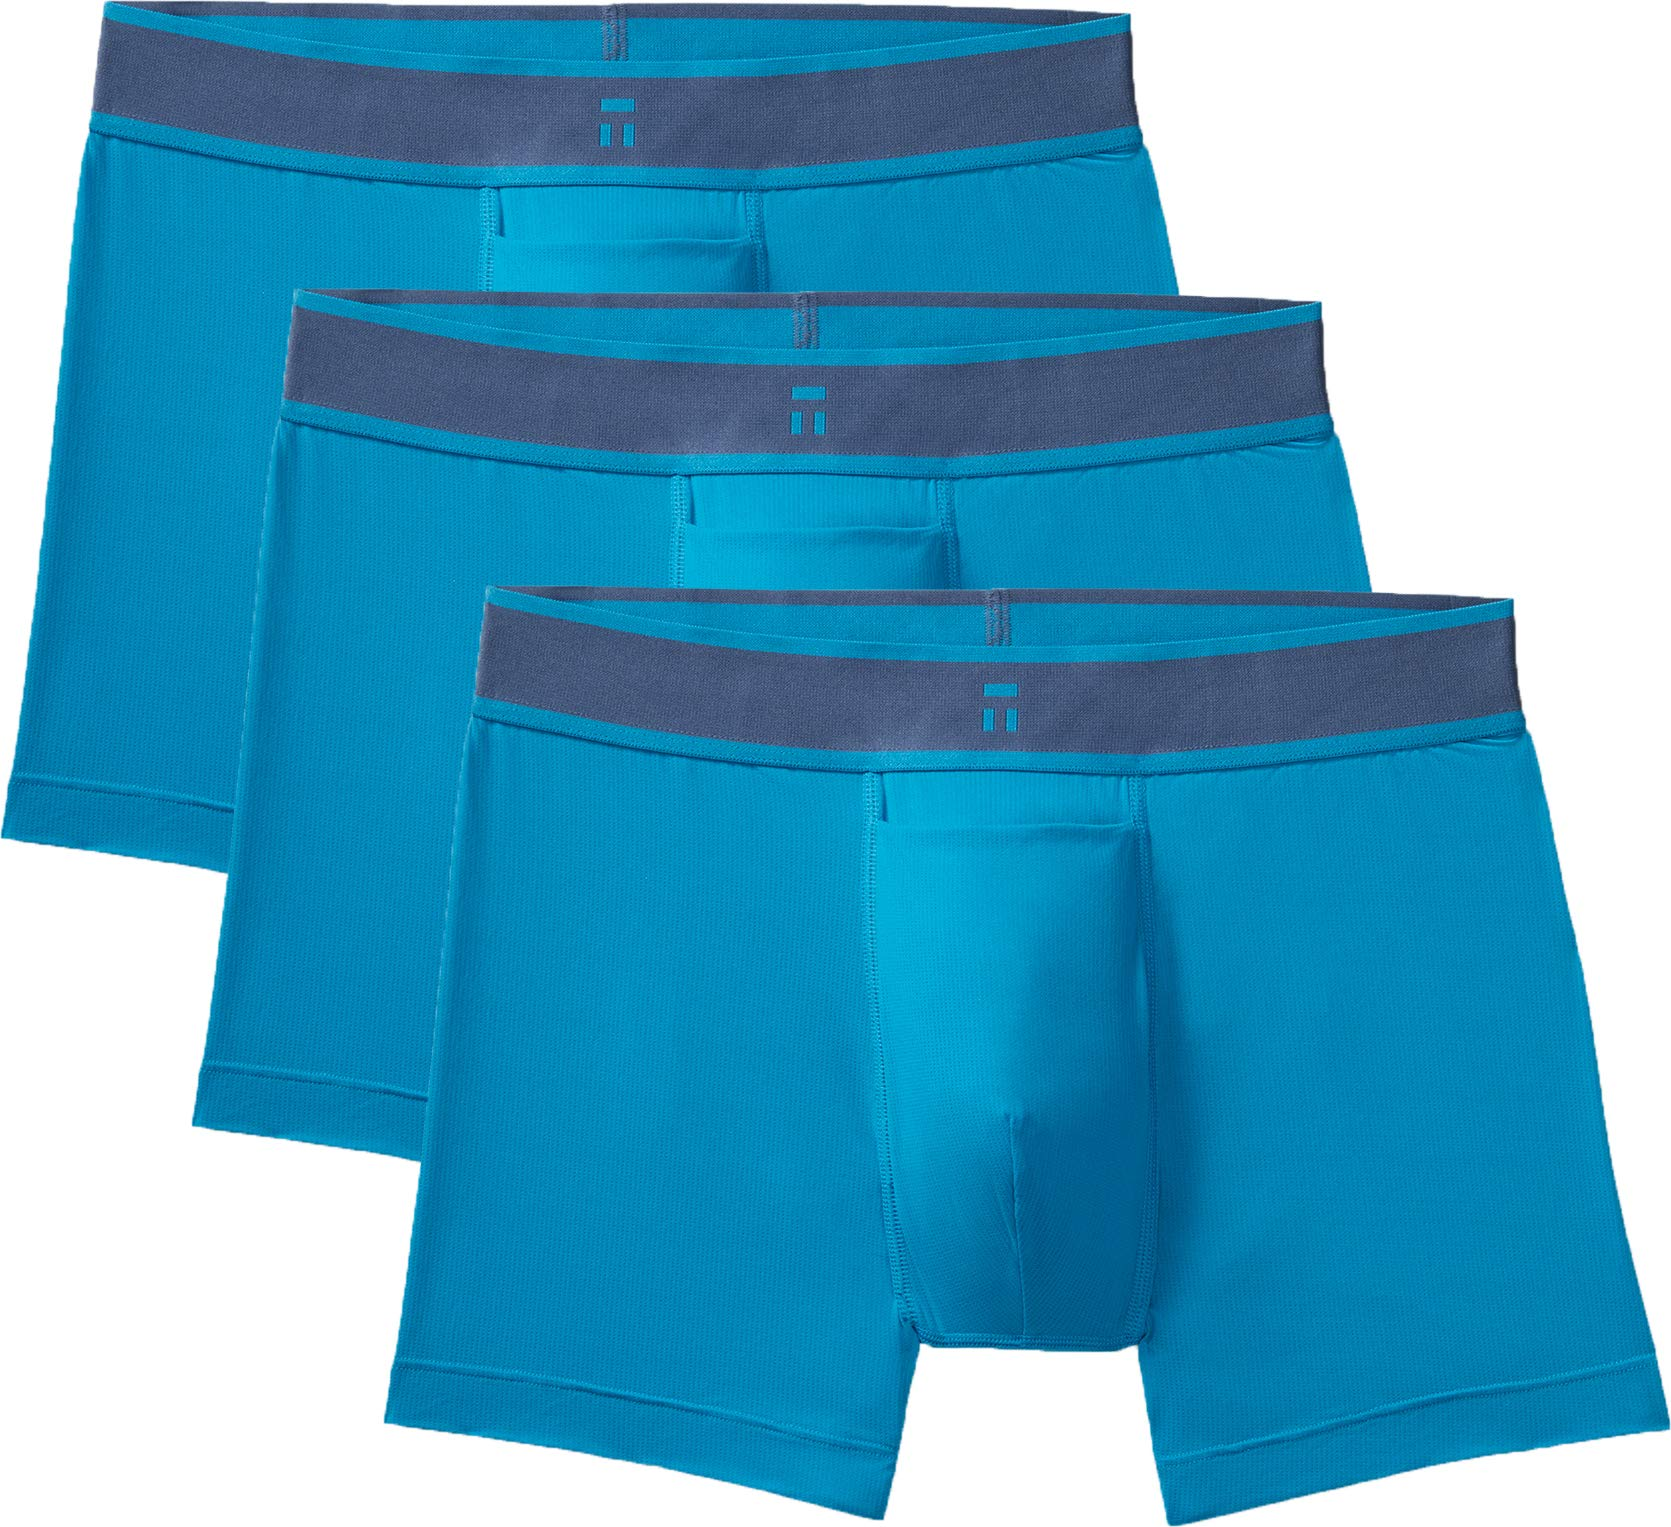 Tommy John Men's Air Icon Trunks - 3 Pack - Comfortable Breathable Soft Underwear for Men (Mosaic Blue, Large) by Tommy John